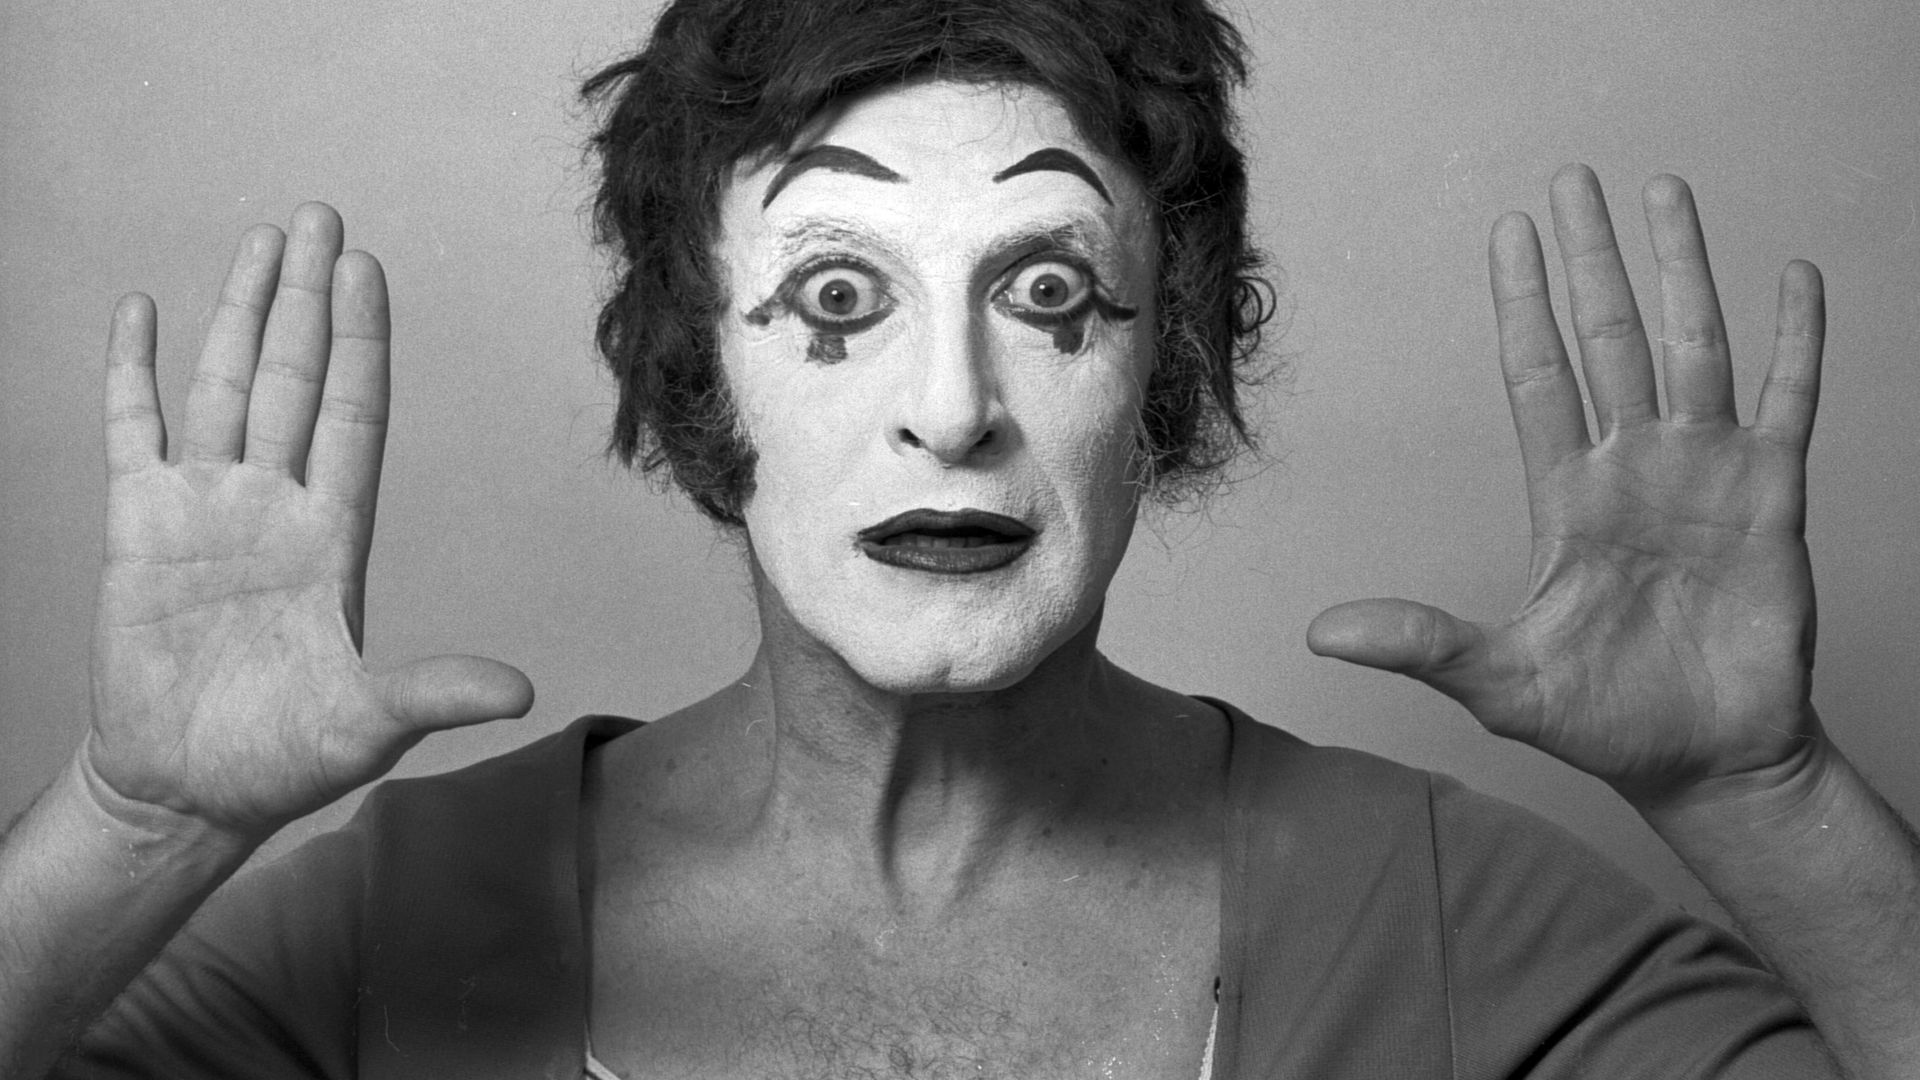 French actor and mime Marcel Marceau as Bip the Clown in New York, March 1973 - Credit: Getty Images